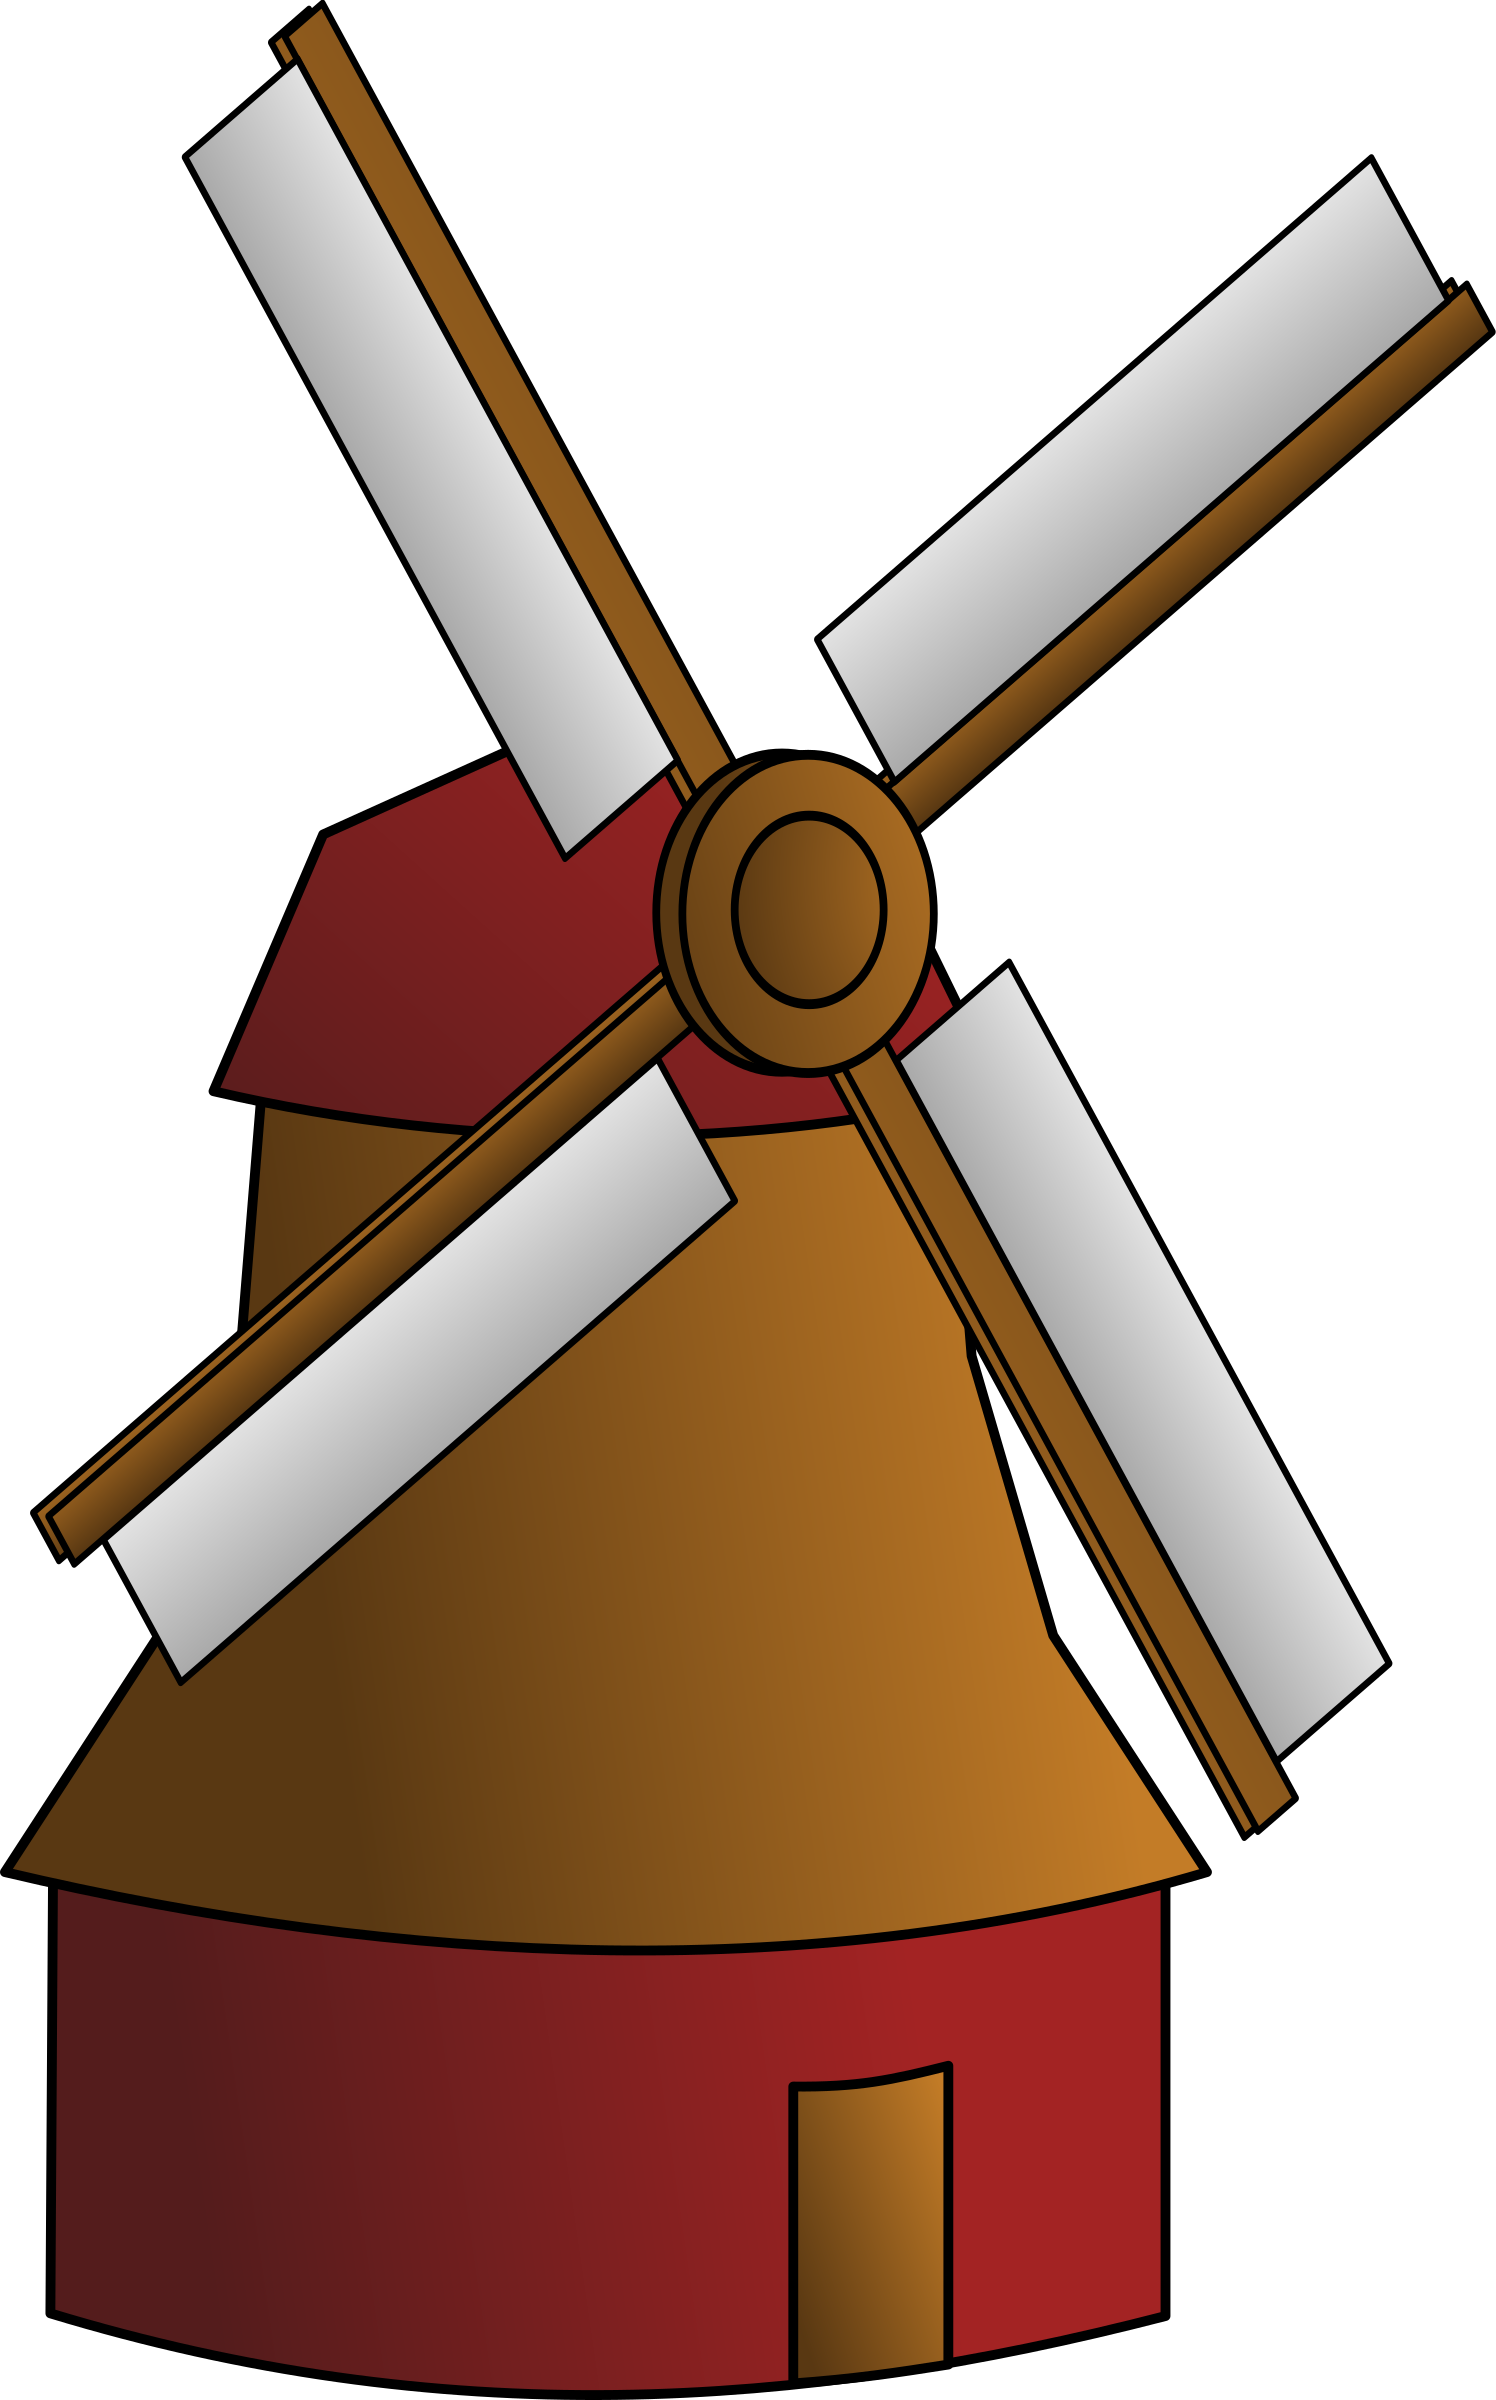 windmill by egore911